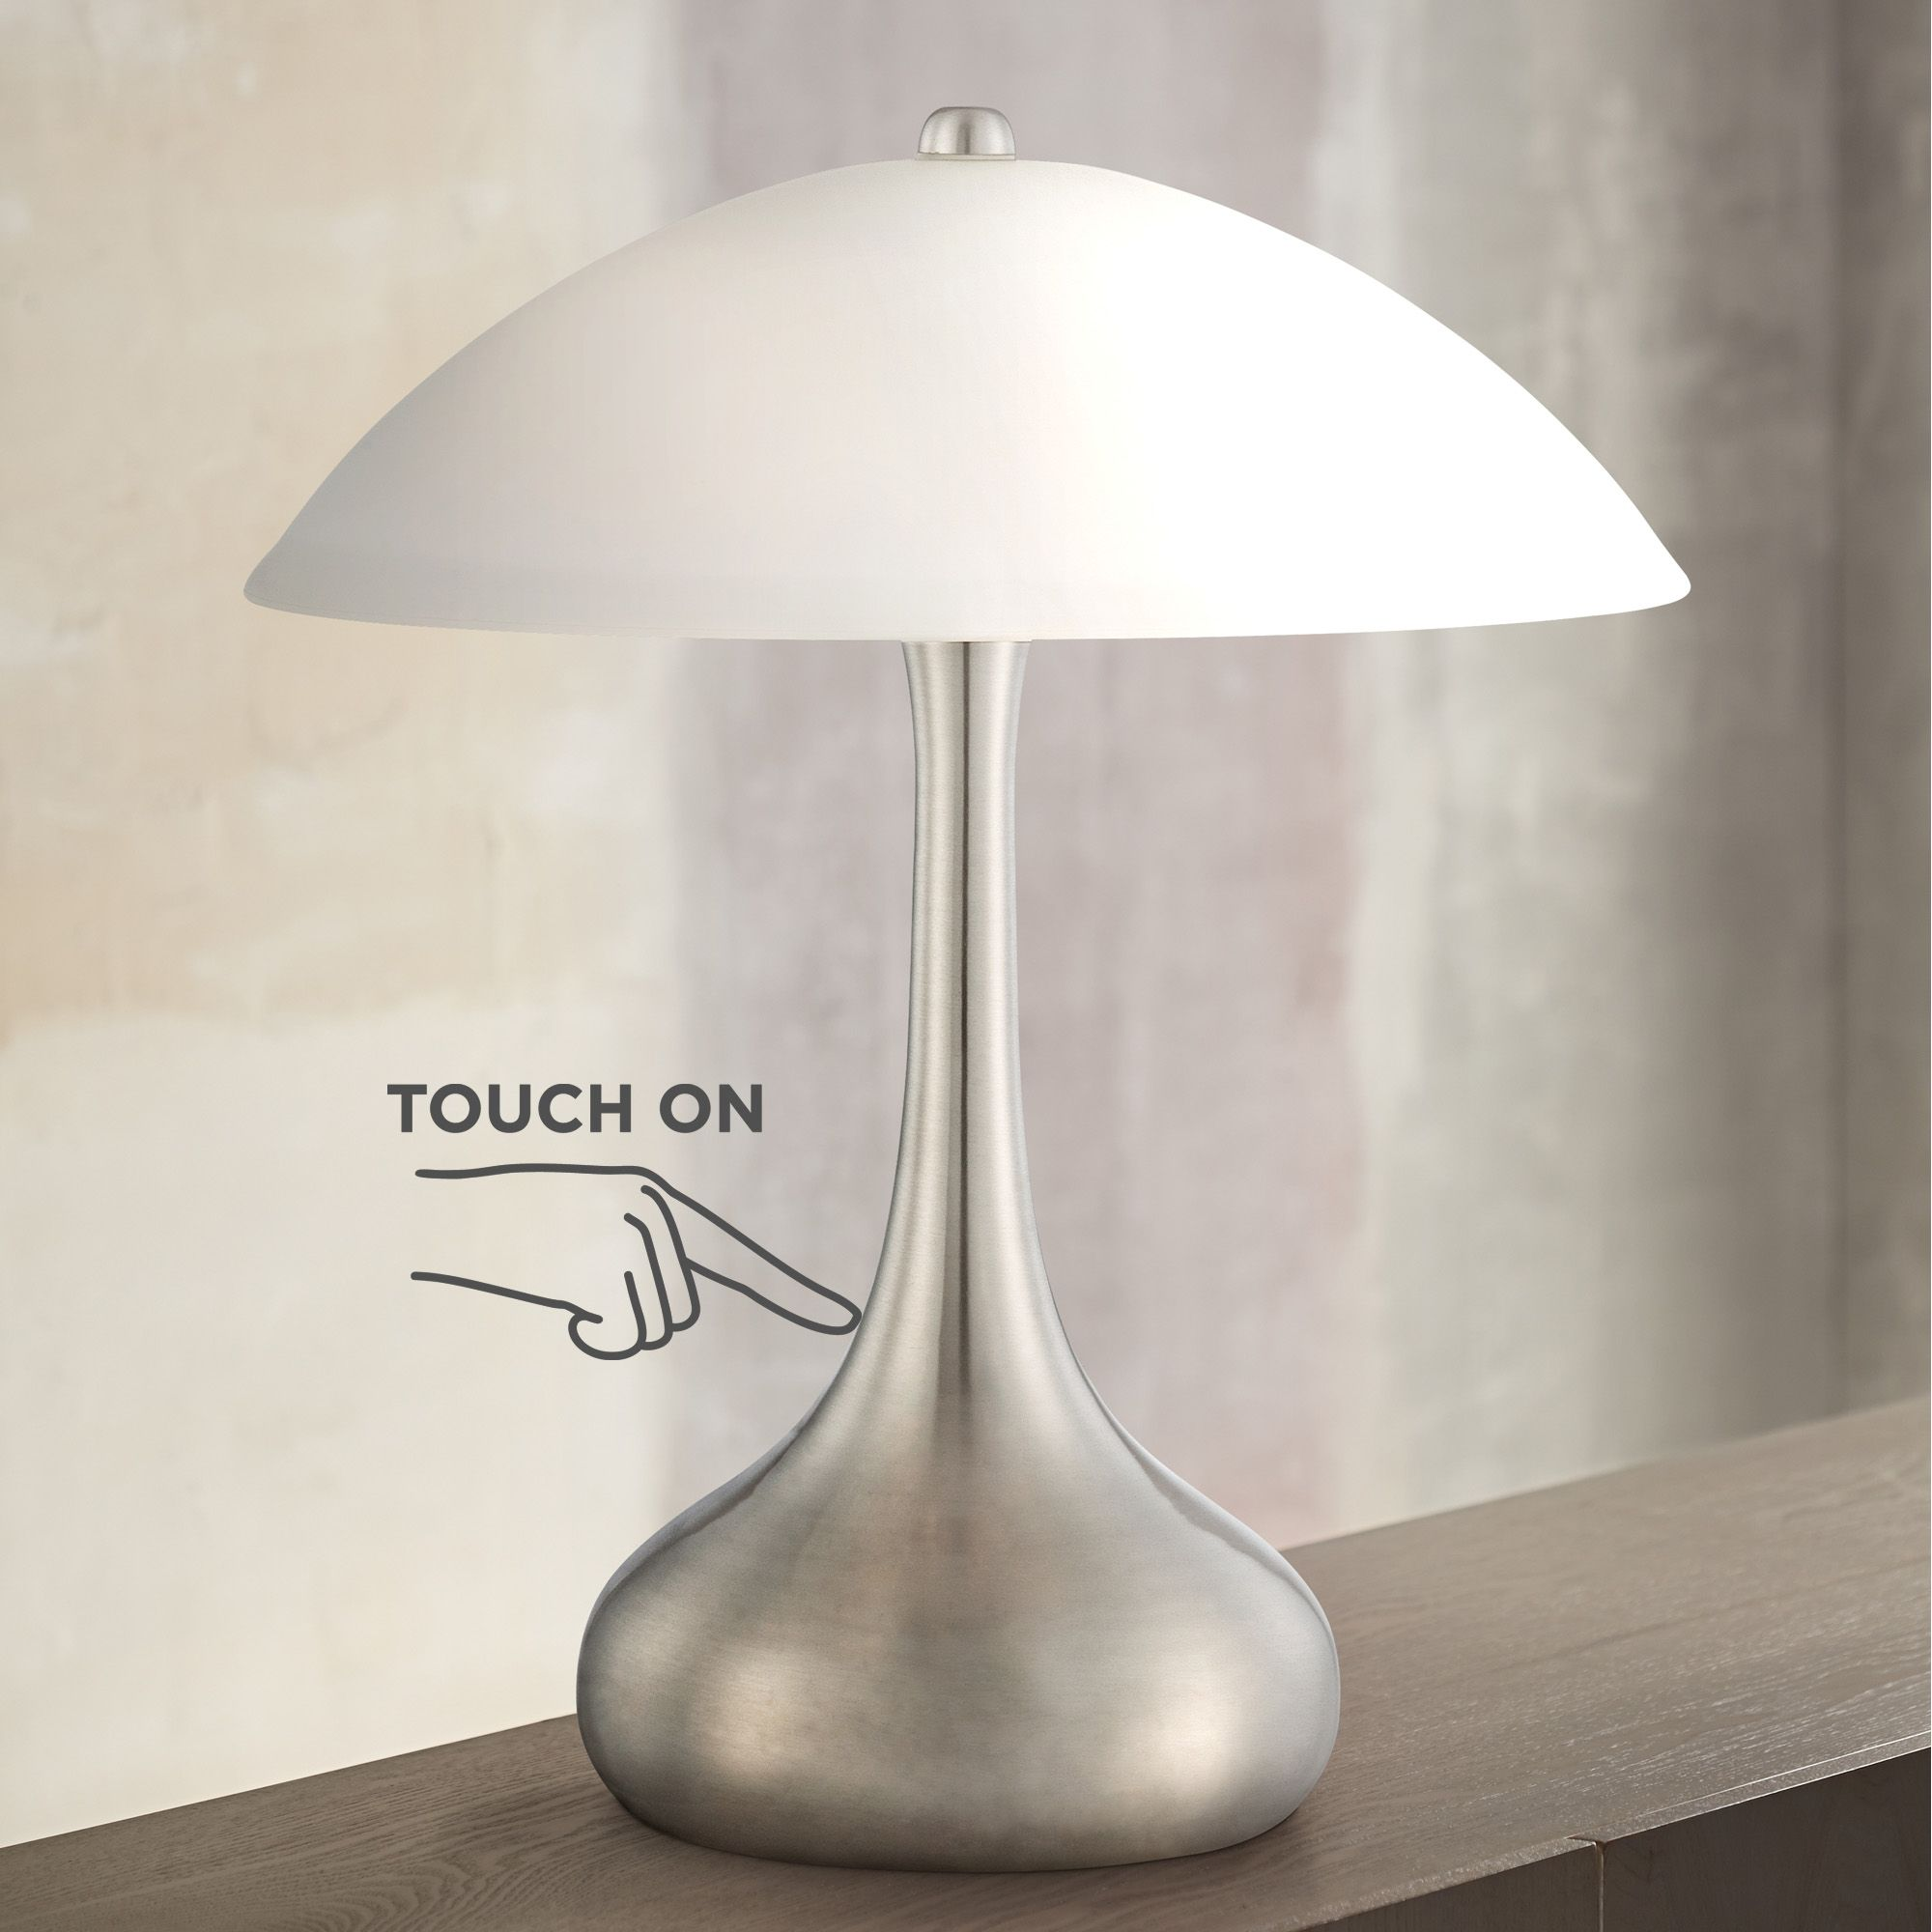 360 Lighting Modern Accent Table Lamp 16 High Brushed Steel Droplet White Glass Shade Touch On Off For Bedroom Bedside Nightstand Walmart Com Walmart Com